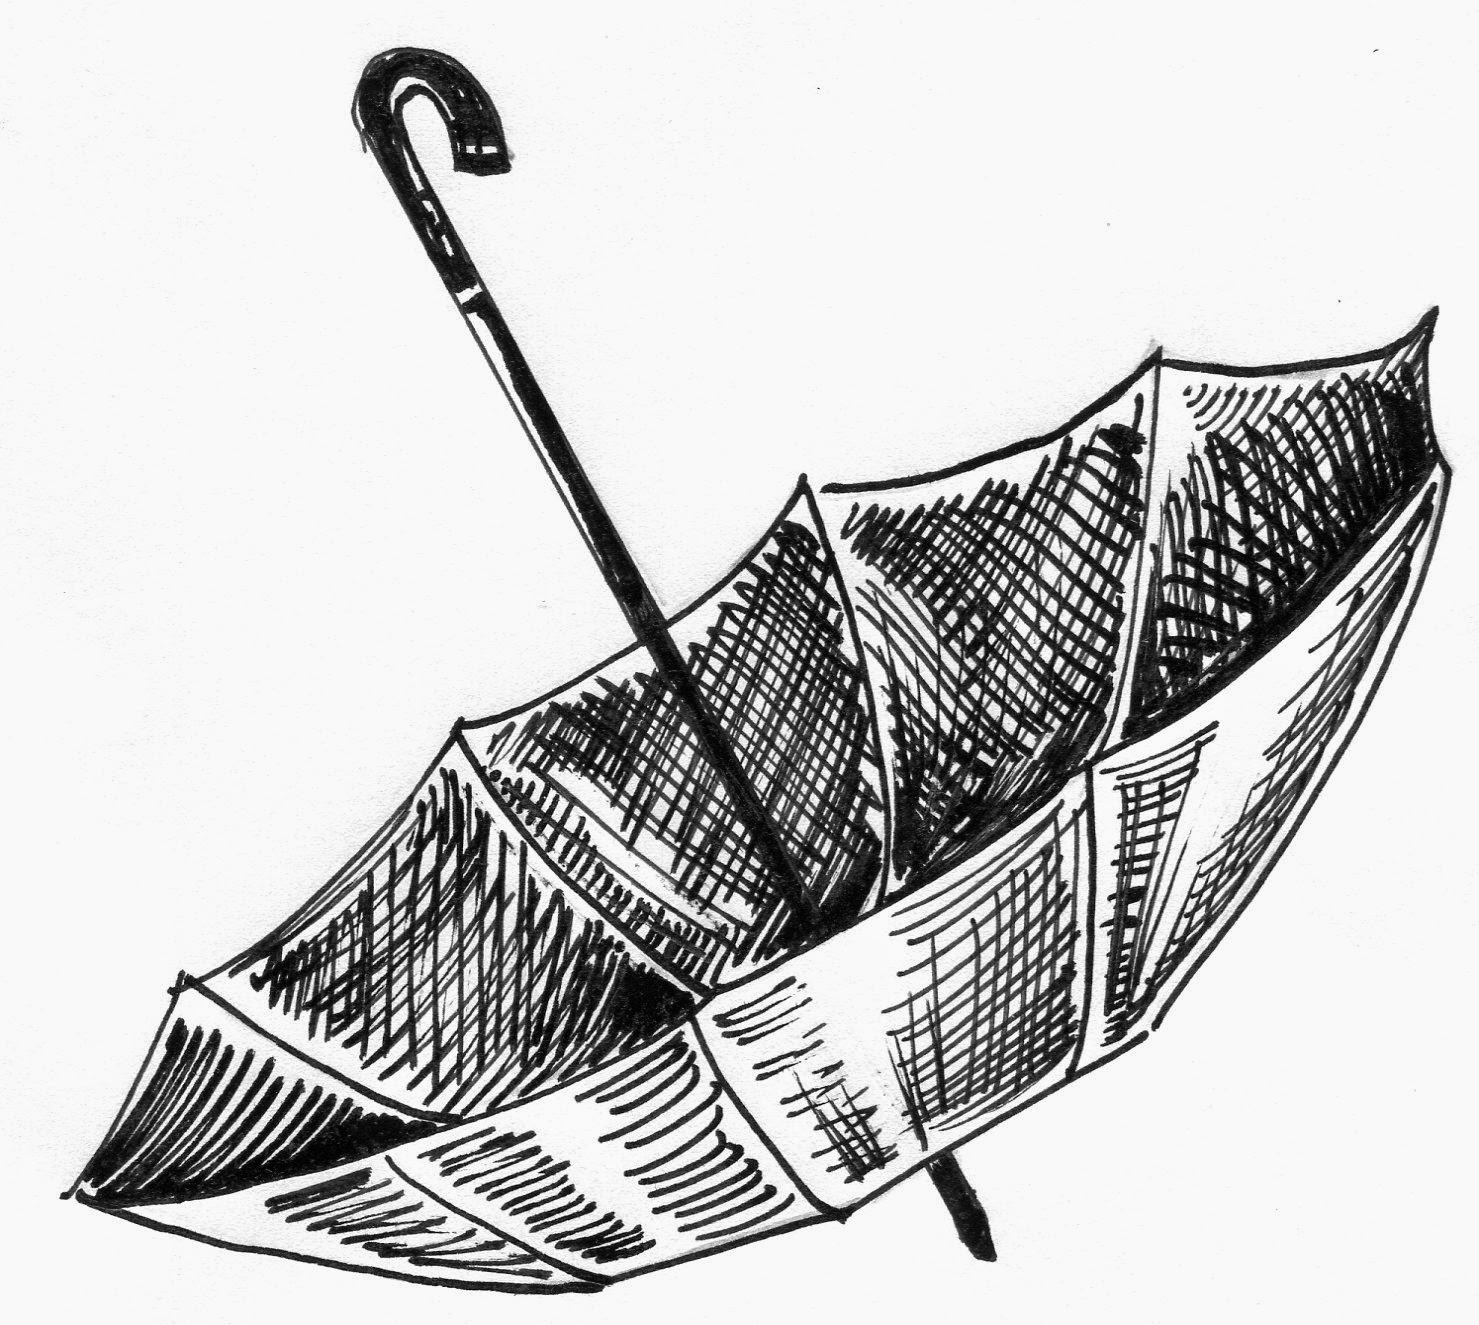 Line Drawing Umbrella : Umbrella line drawing